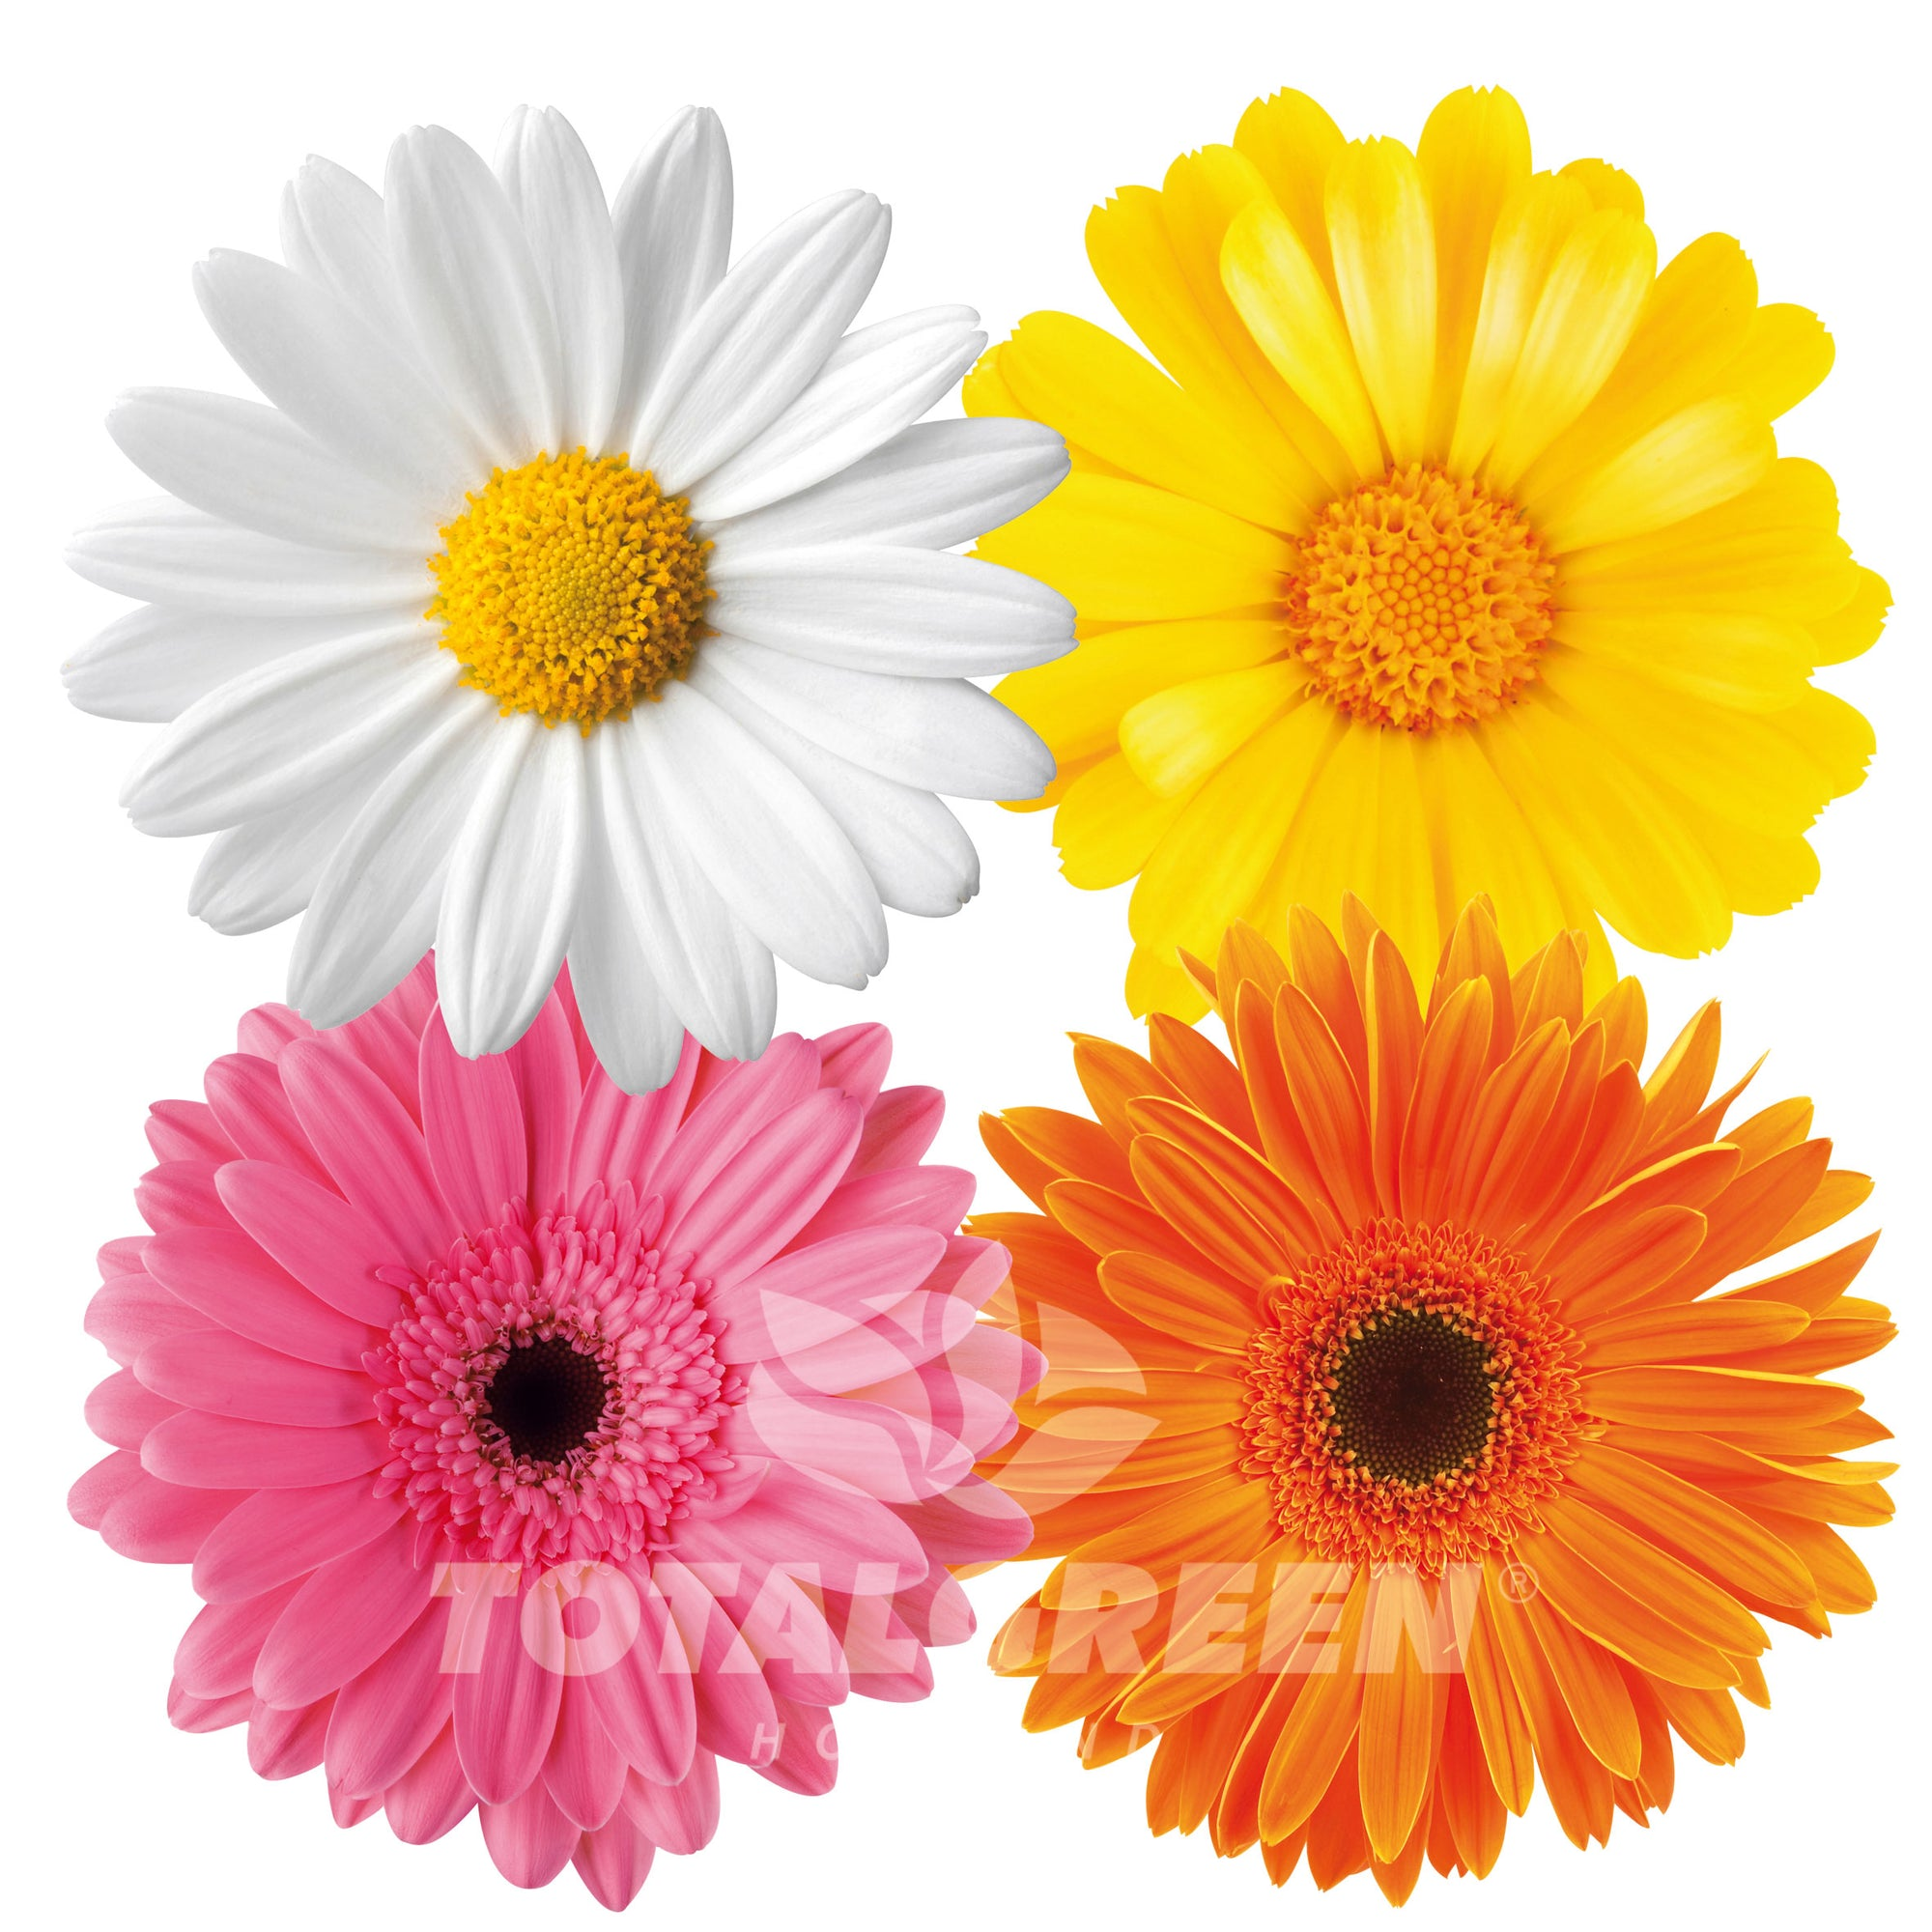 Daisy Grow Kits Mothers Day